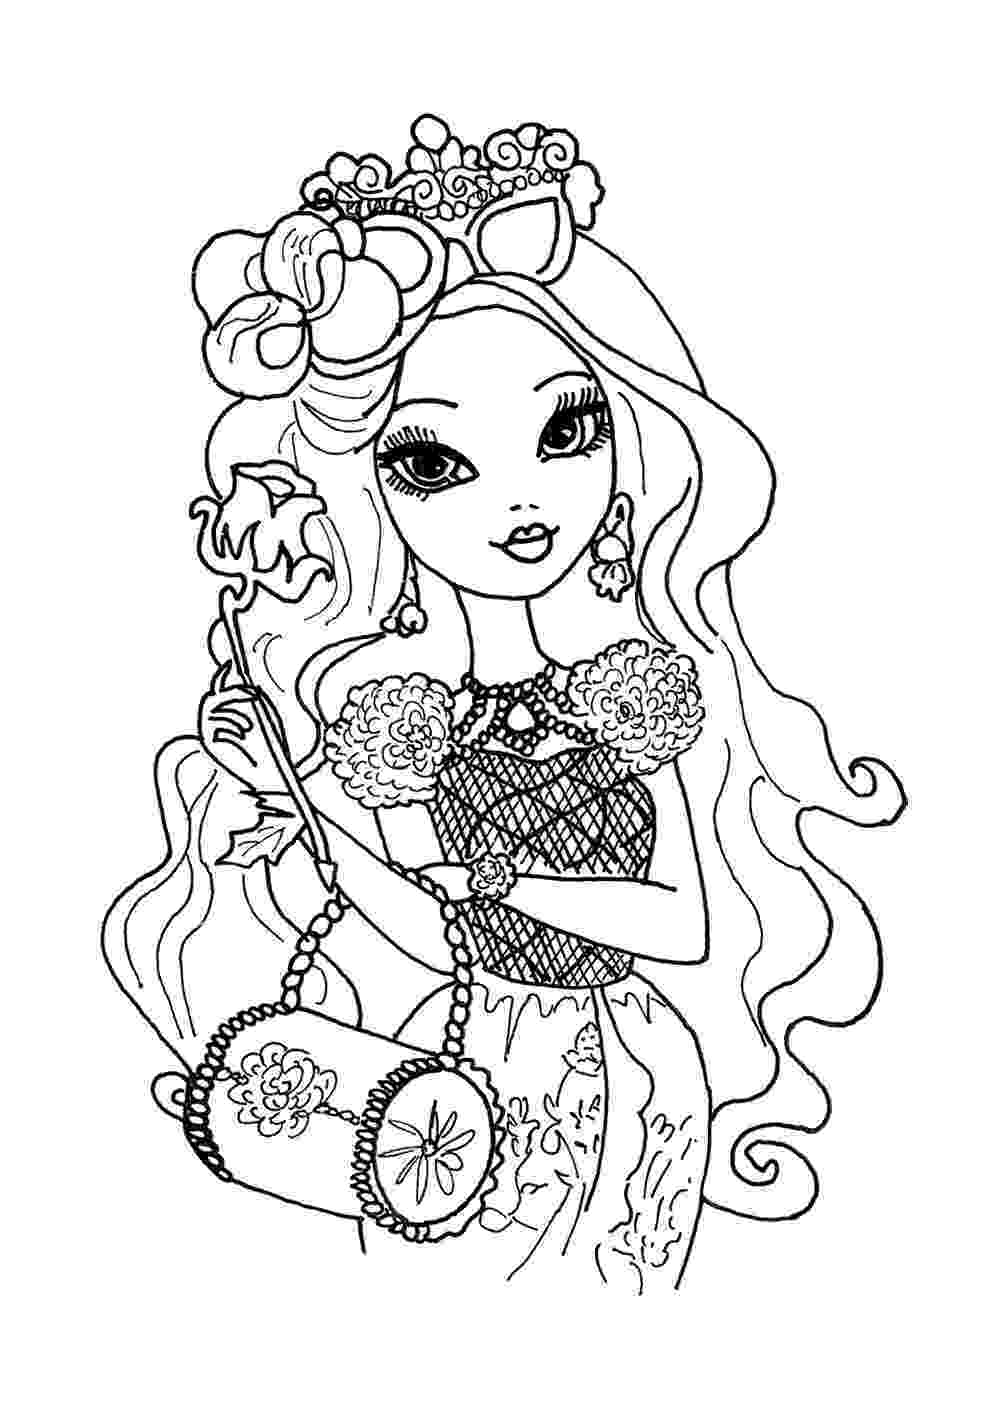 ever after coloring pages top 10 ever after high coloring pages after ever coloring pages